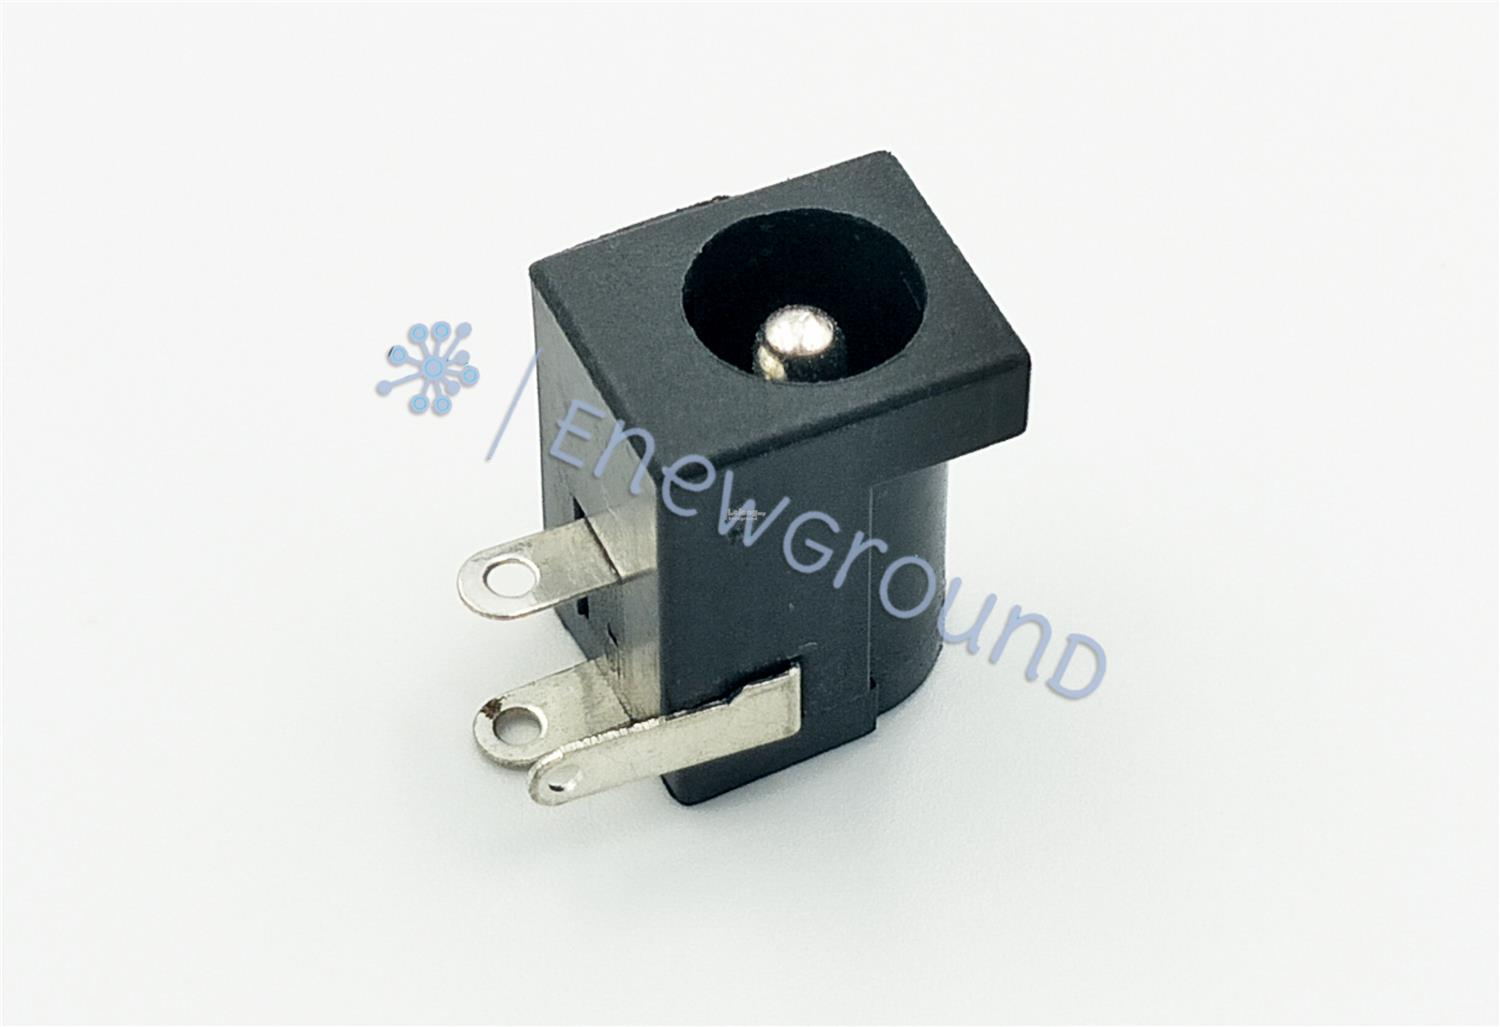 DC power connector (2.1 mm DC jack, female)